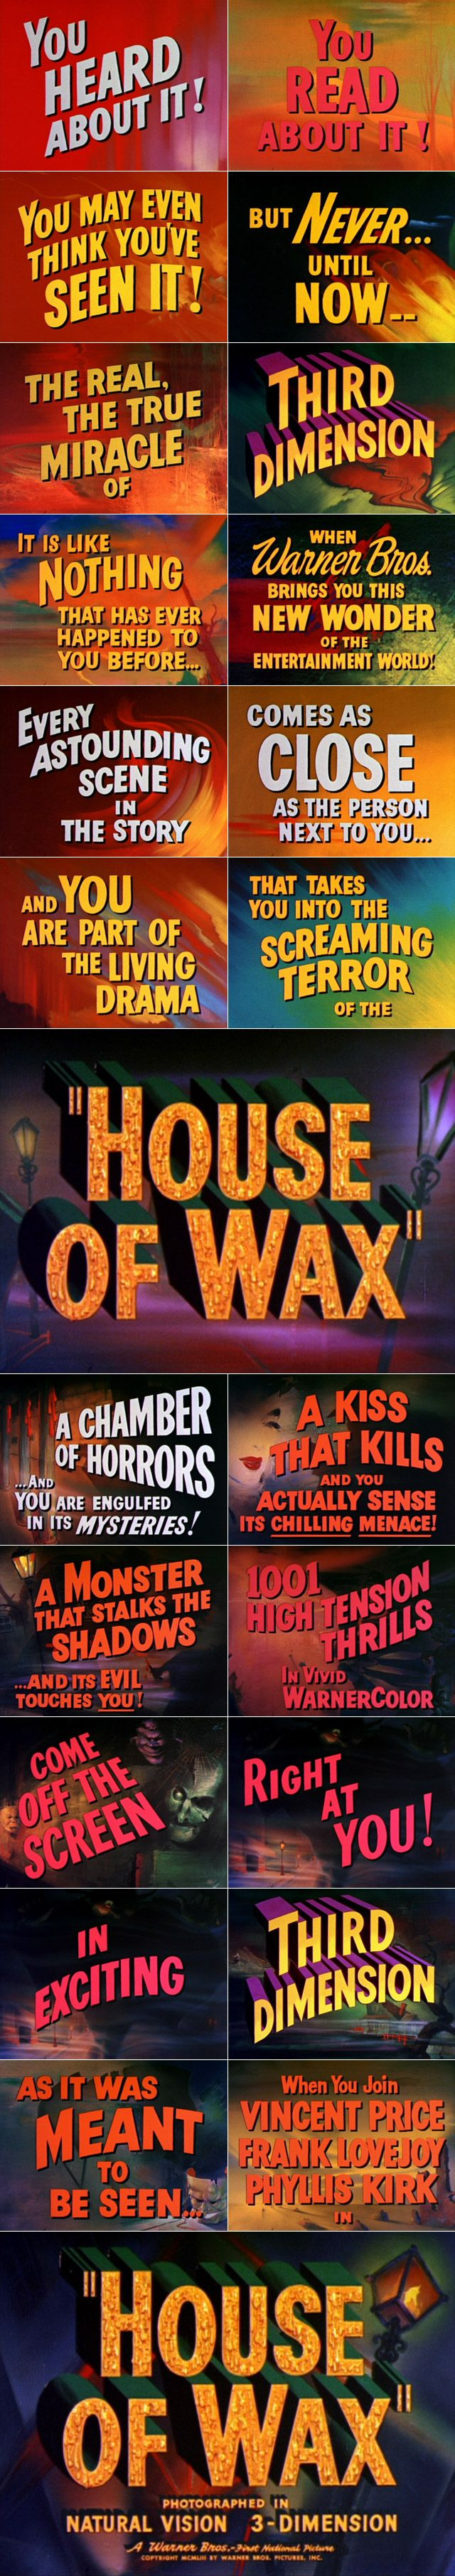 House Of Wax 1953 Trailer Typography